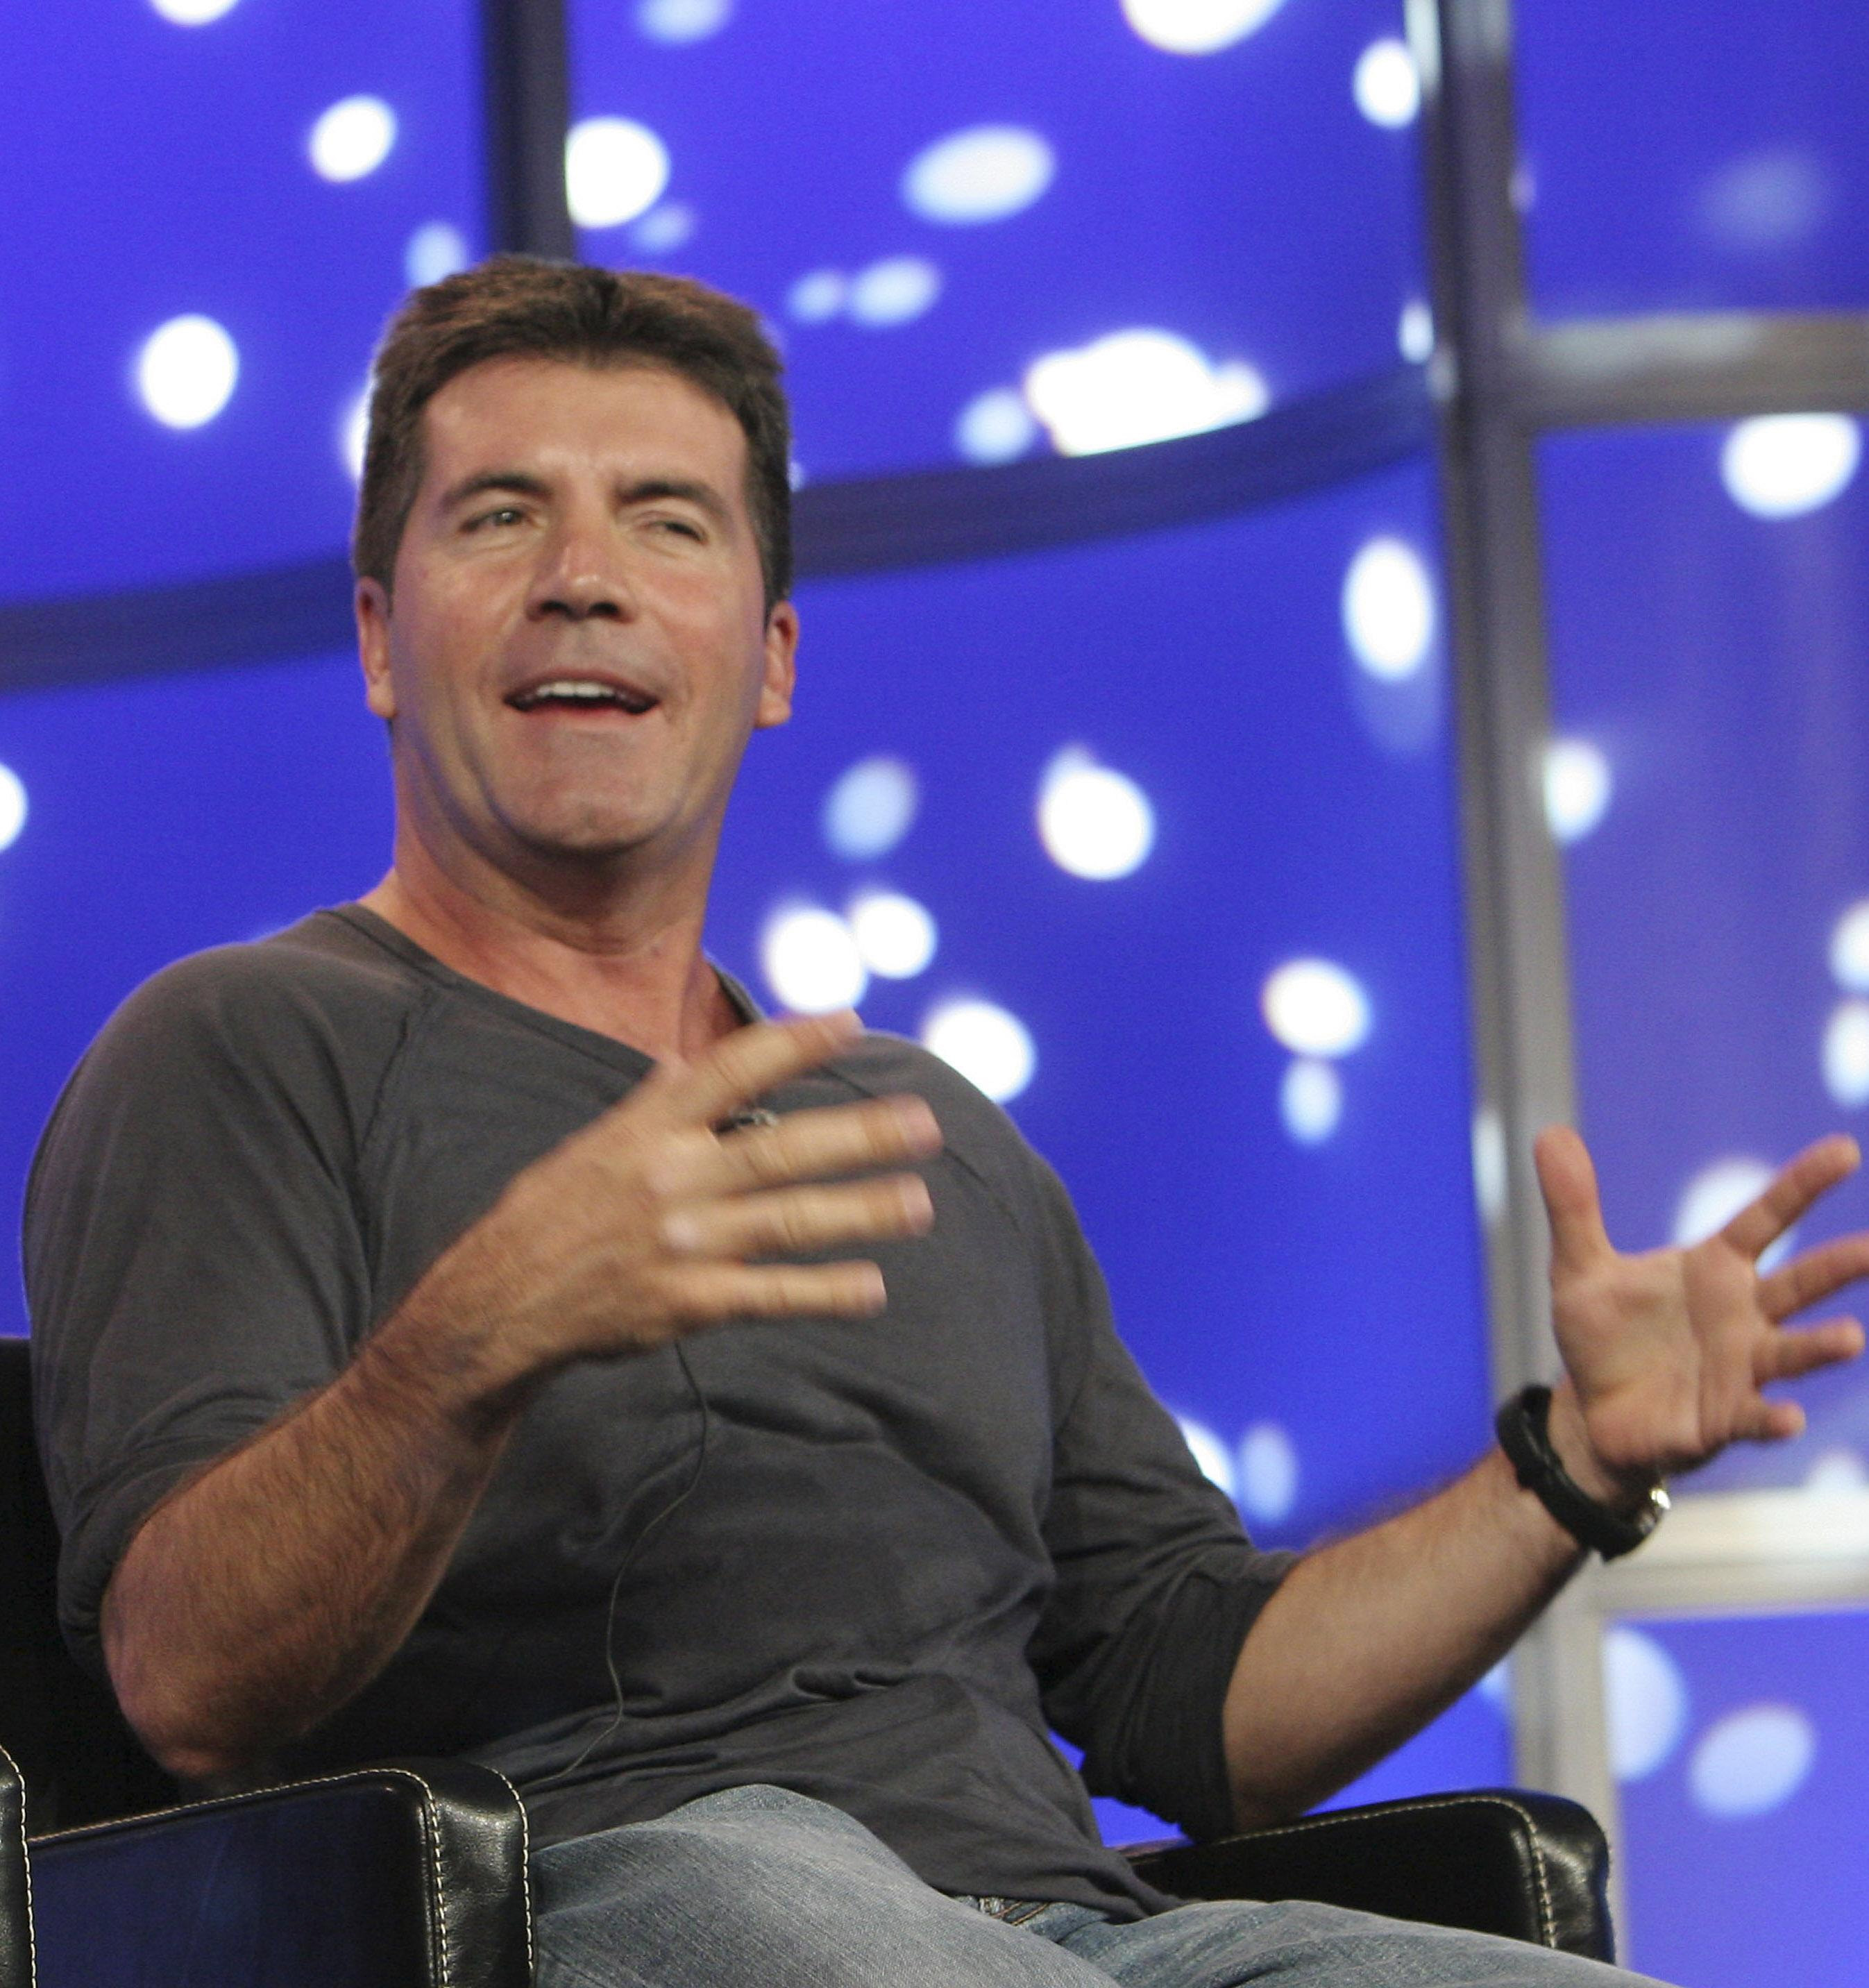 Cowell lives in fear of angry mums